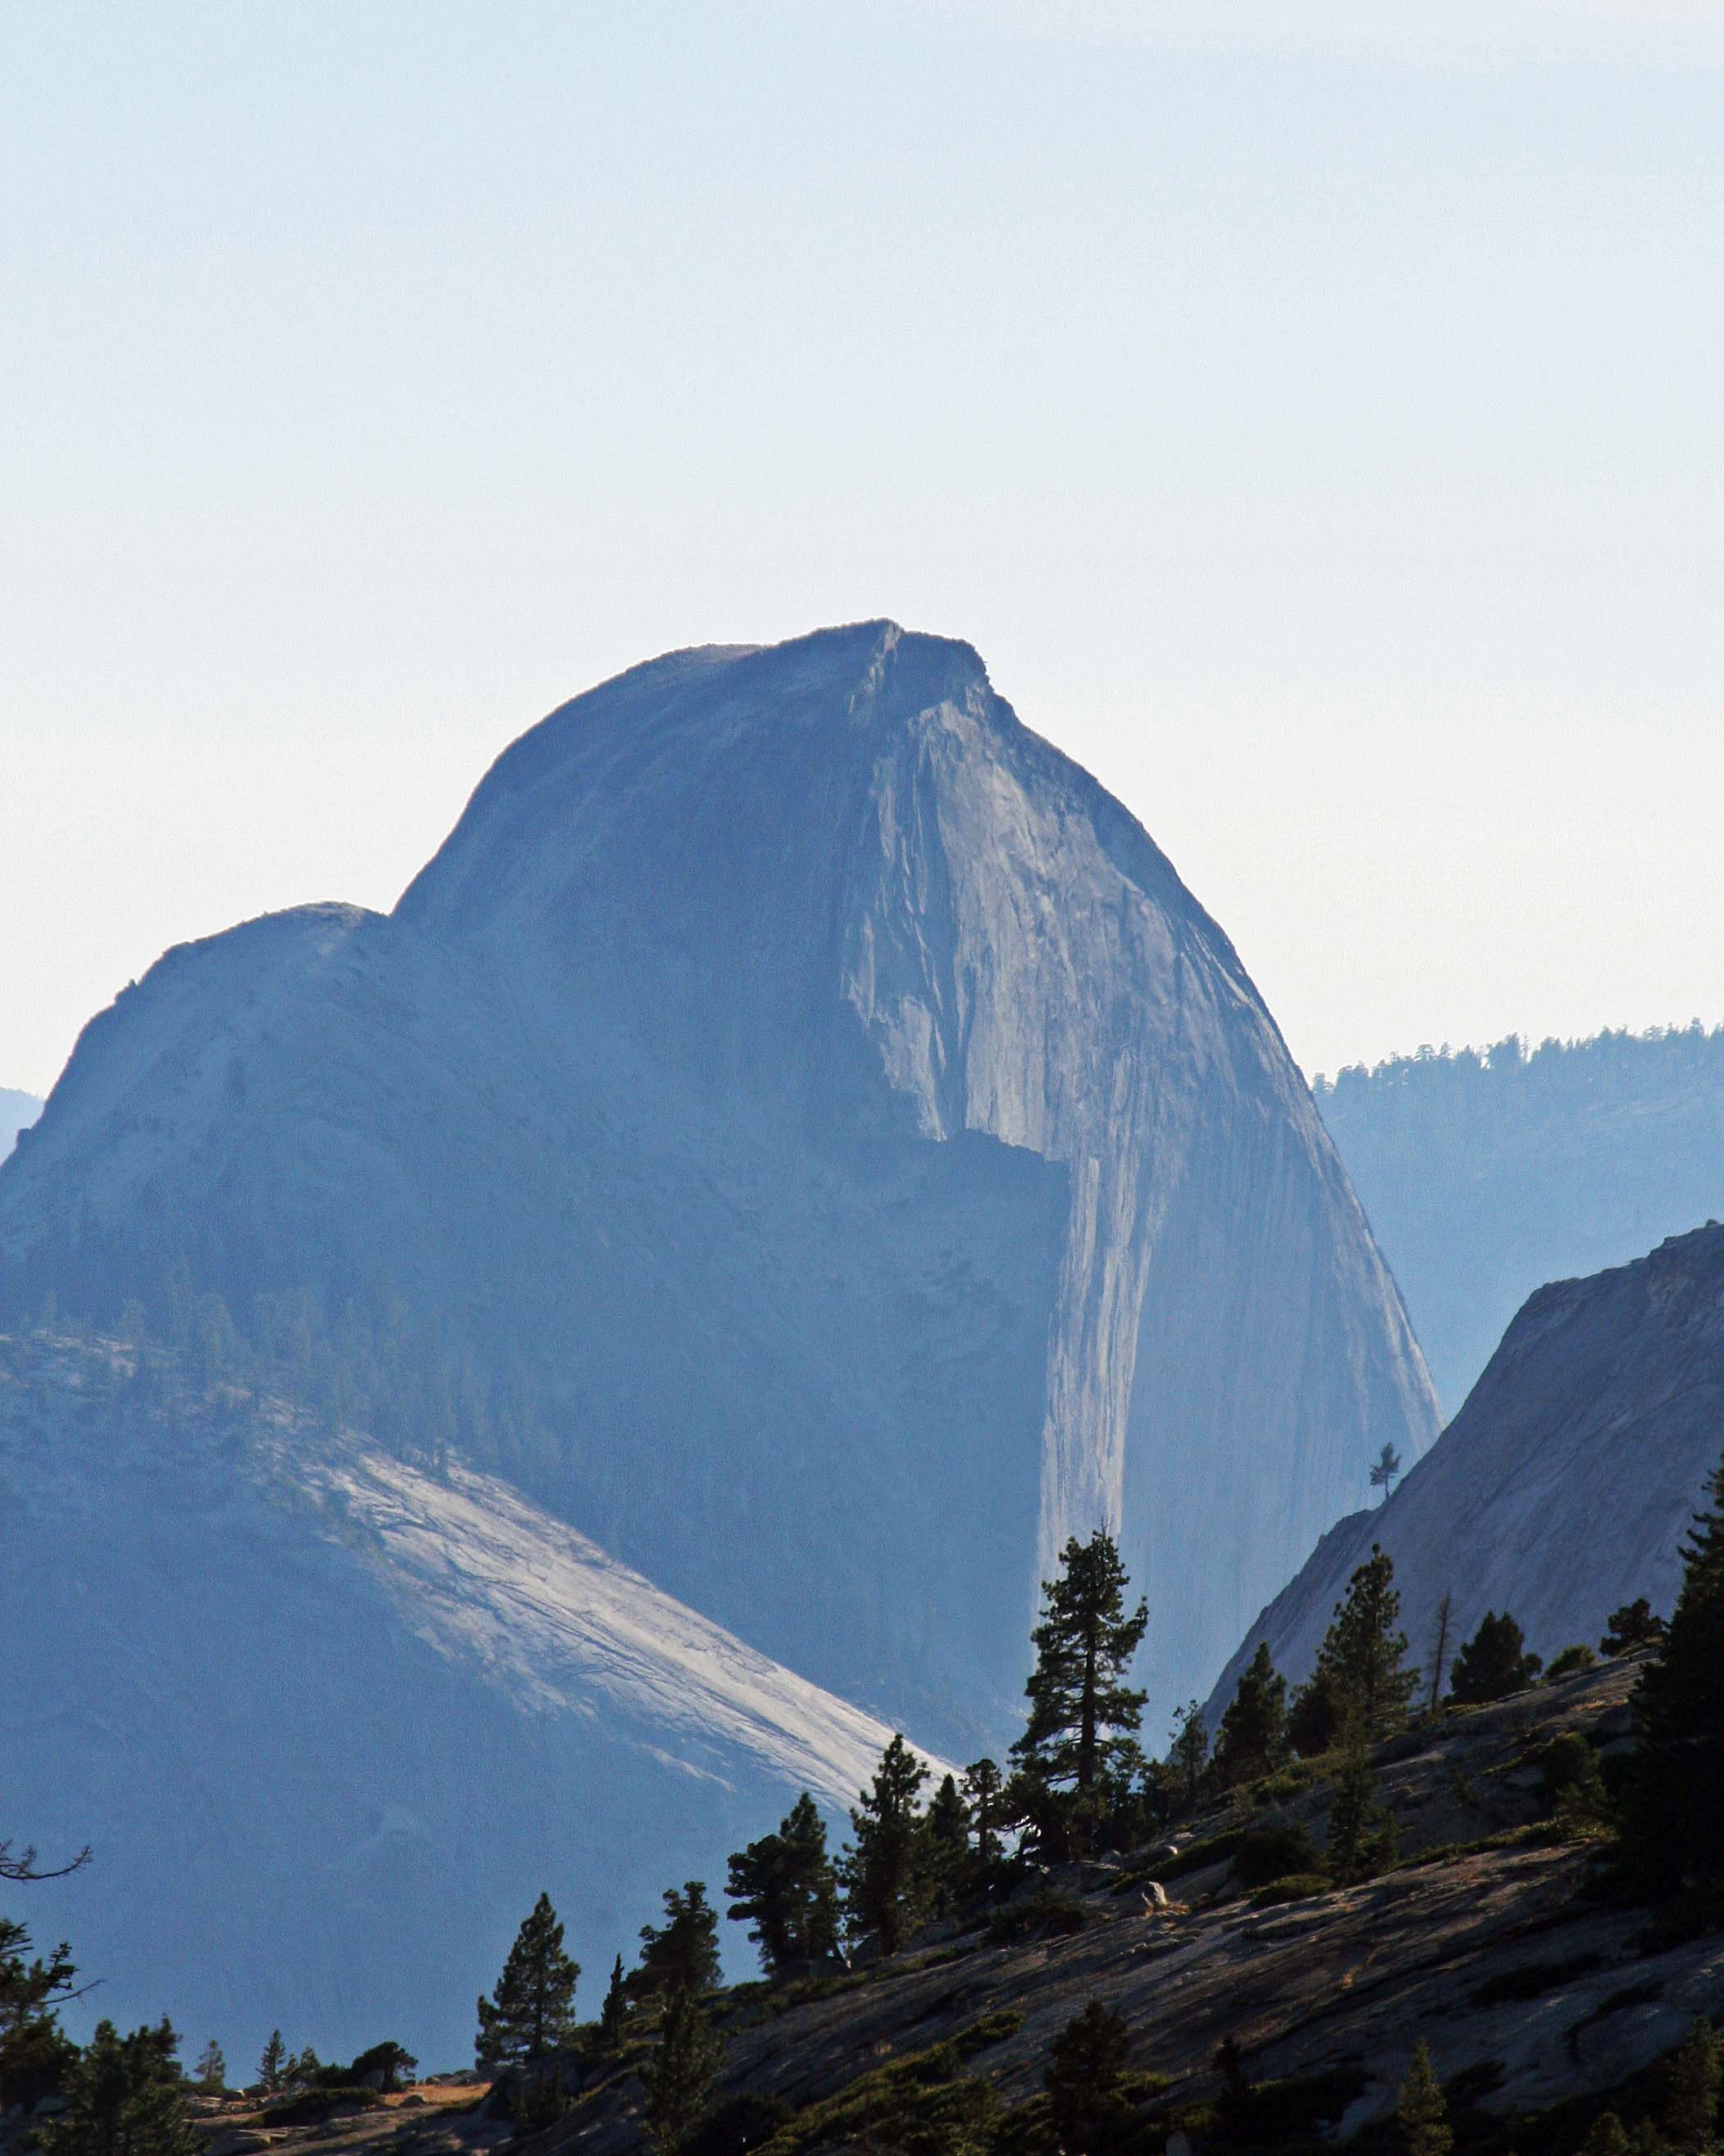 Yosemite's Half Dome captured on a hazy day. Photo by Curtis Mekemson.